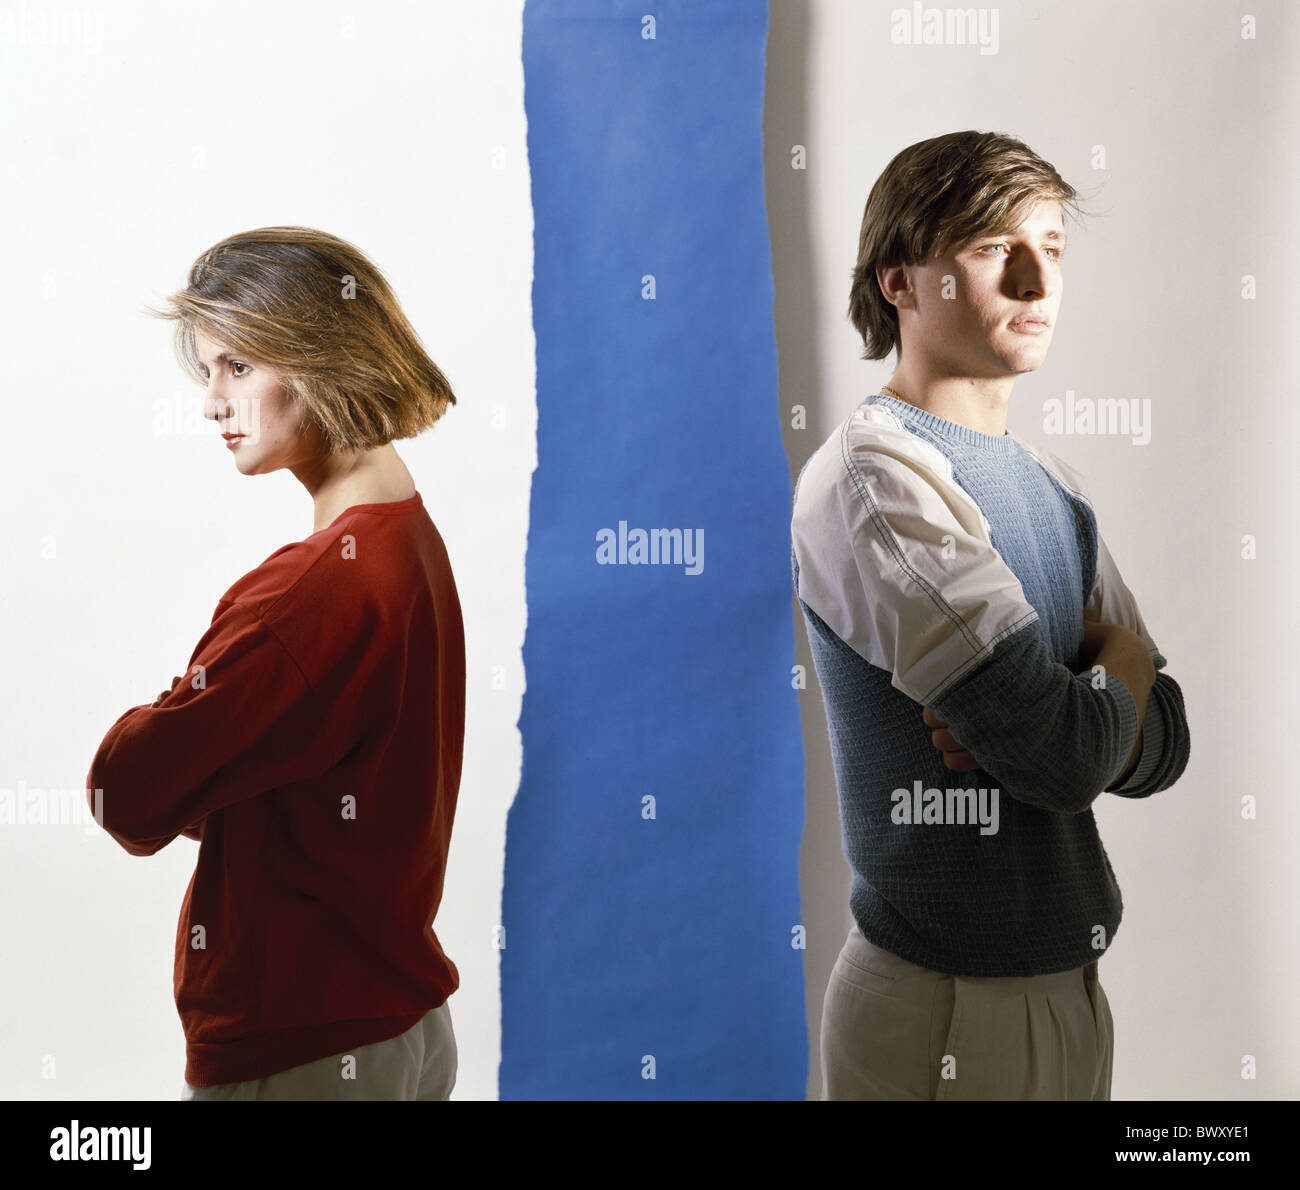 turned away parents family argue tore quarrel argument separation divorce problem problematic symbol sepa - Stock Image